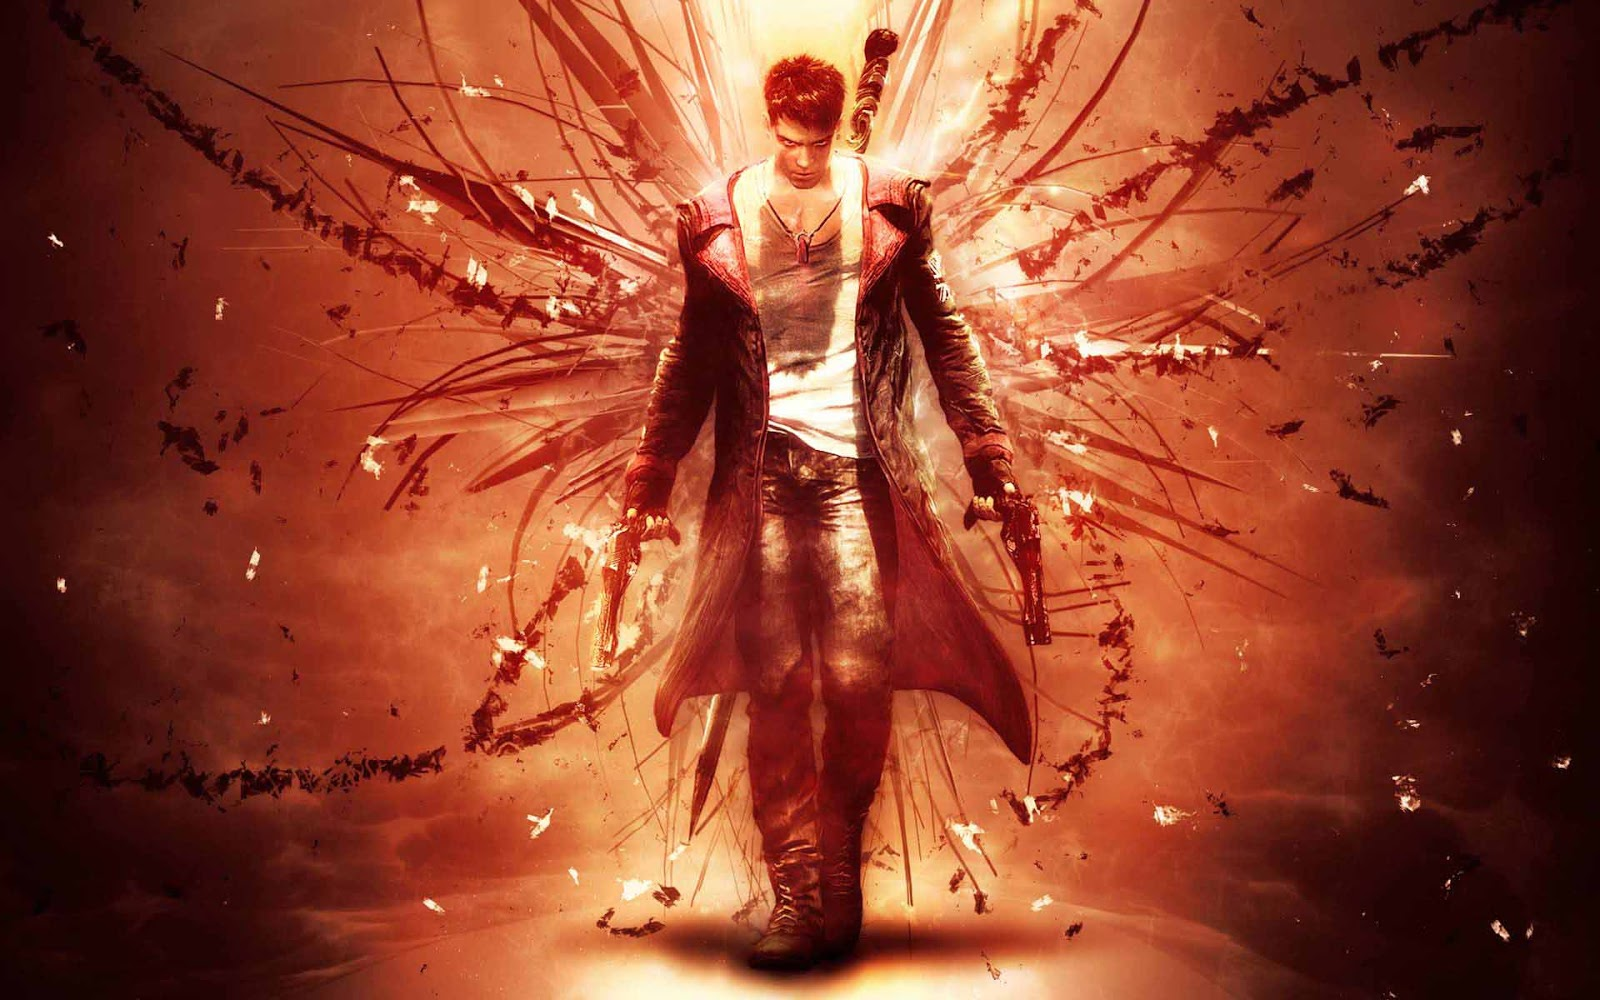 Devil May Cry 5 Wallpaper: HQ Wallpapers: Devil May Cry Hd Wallpapers